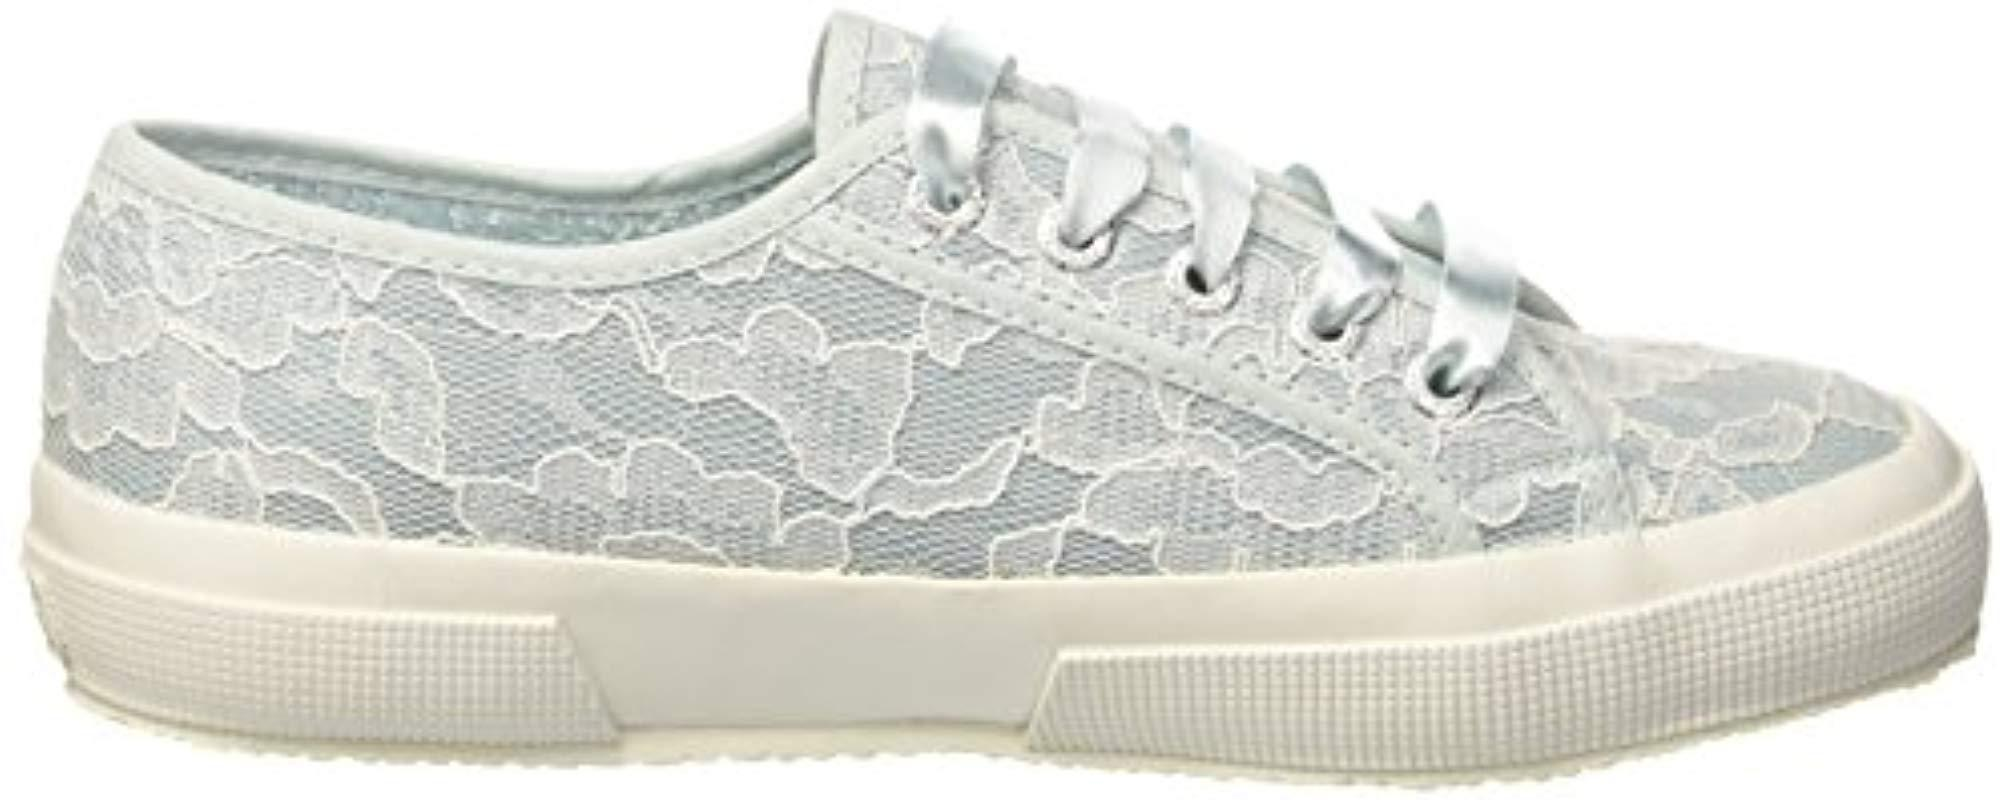 Superga 2750-synlealacew Trainers in